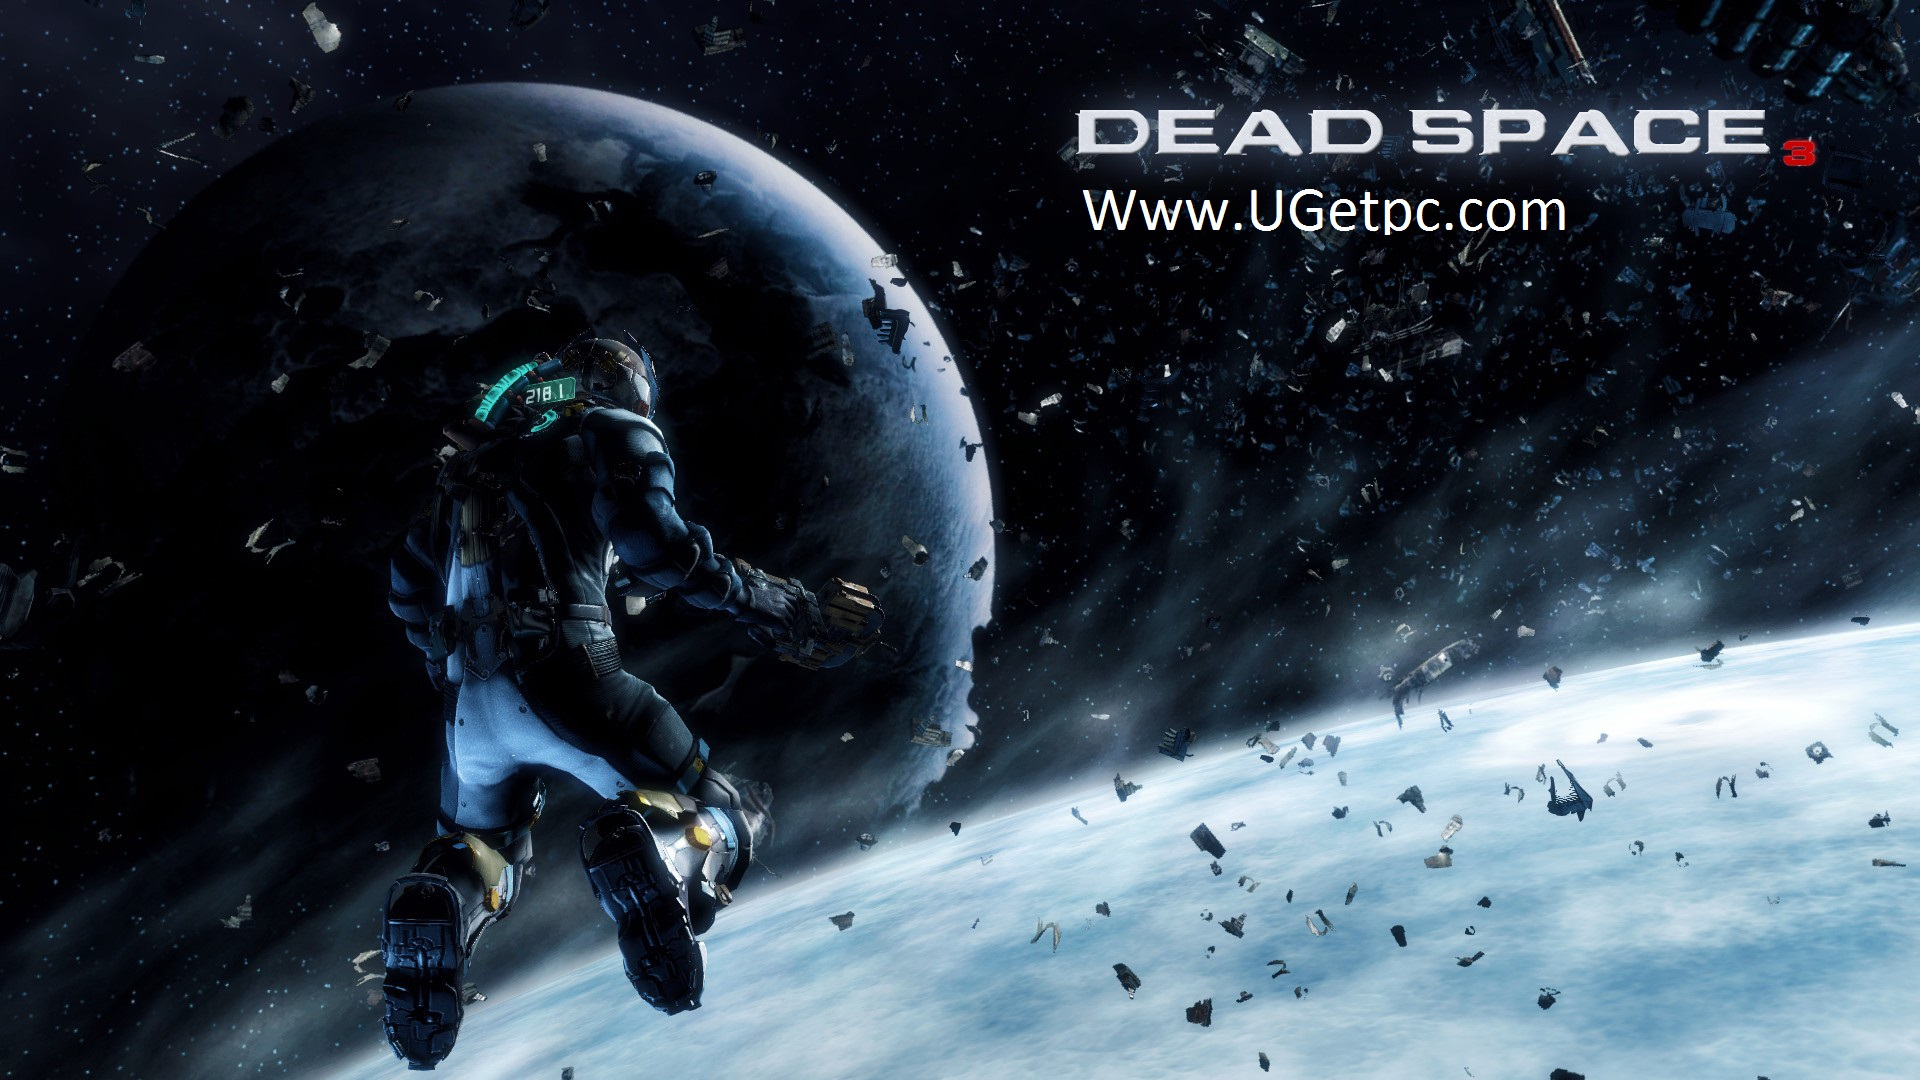 DEAD SPACE 3-cover-UGetpc